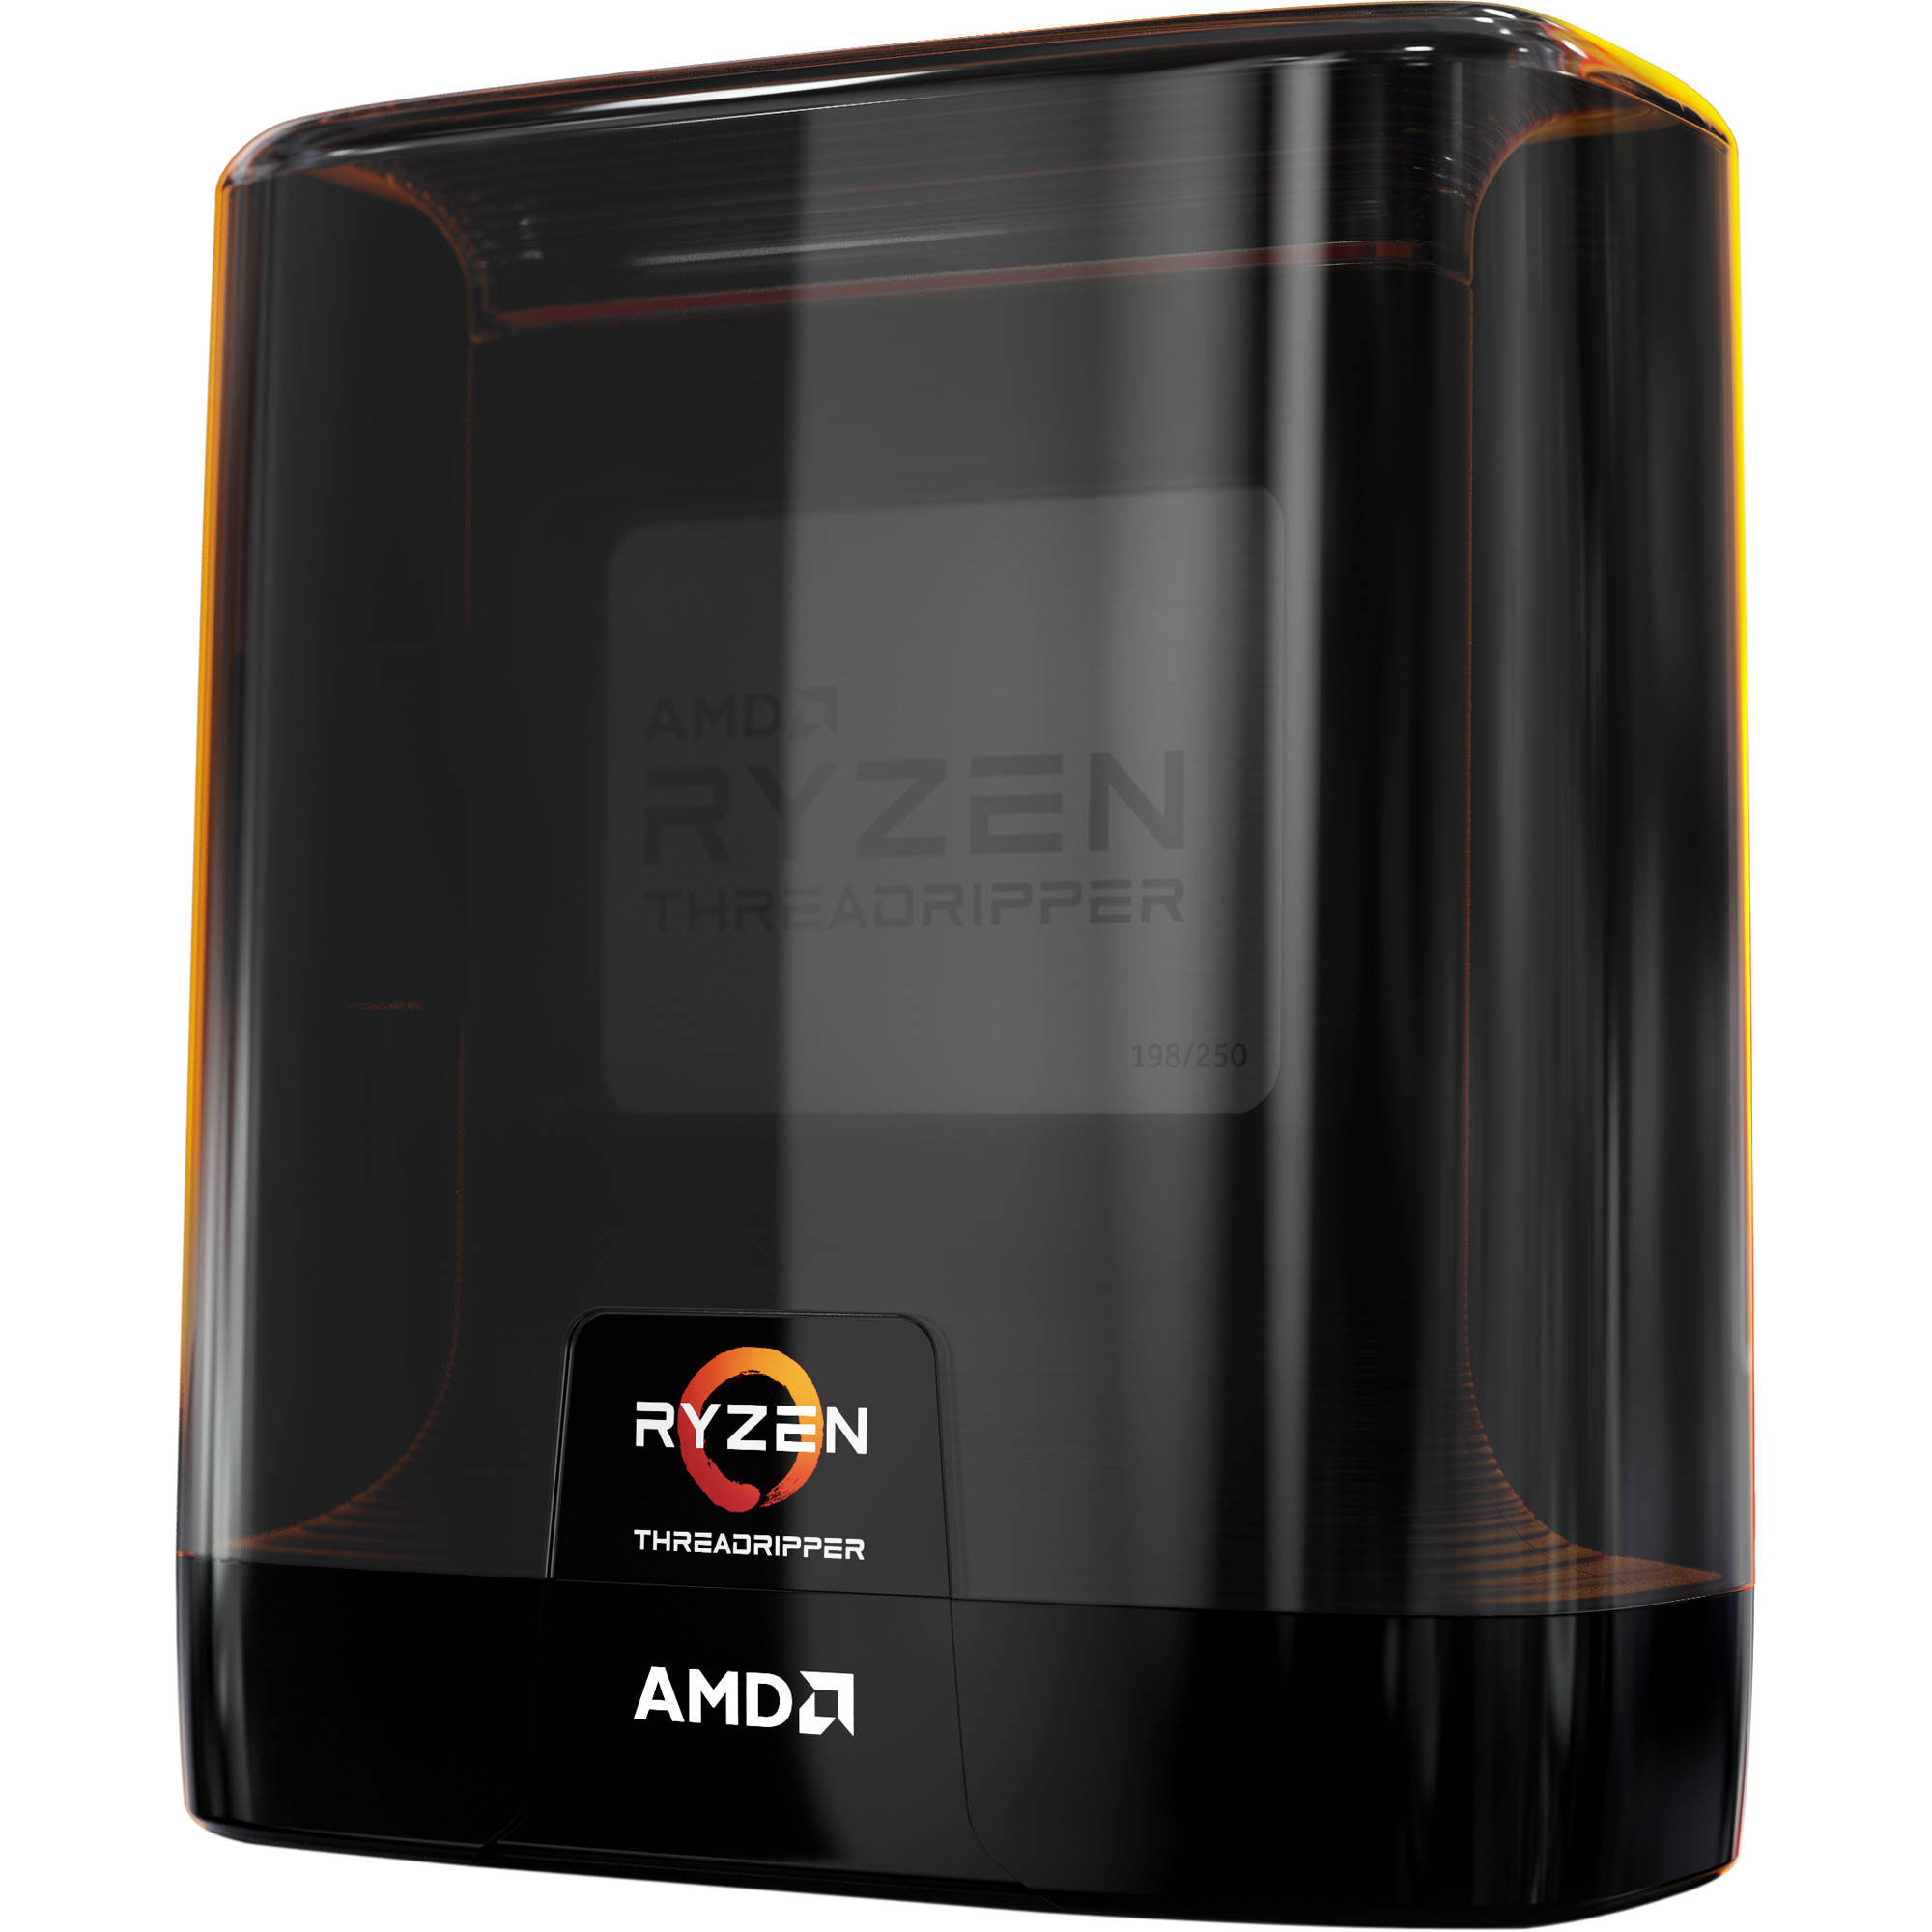 AMD Ryzen Threadripper 3960X 3.8 GHz 24-Core TRX4 Processor